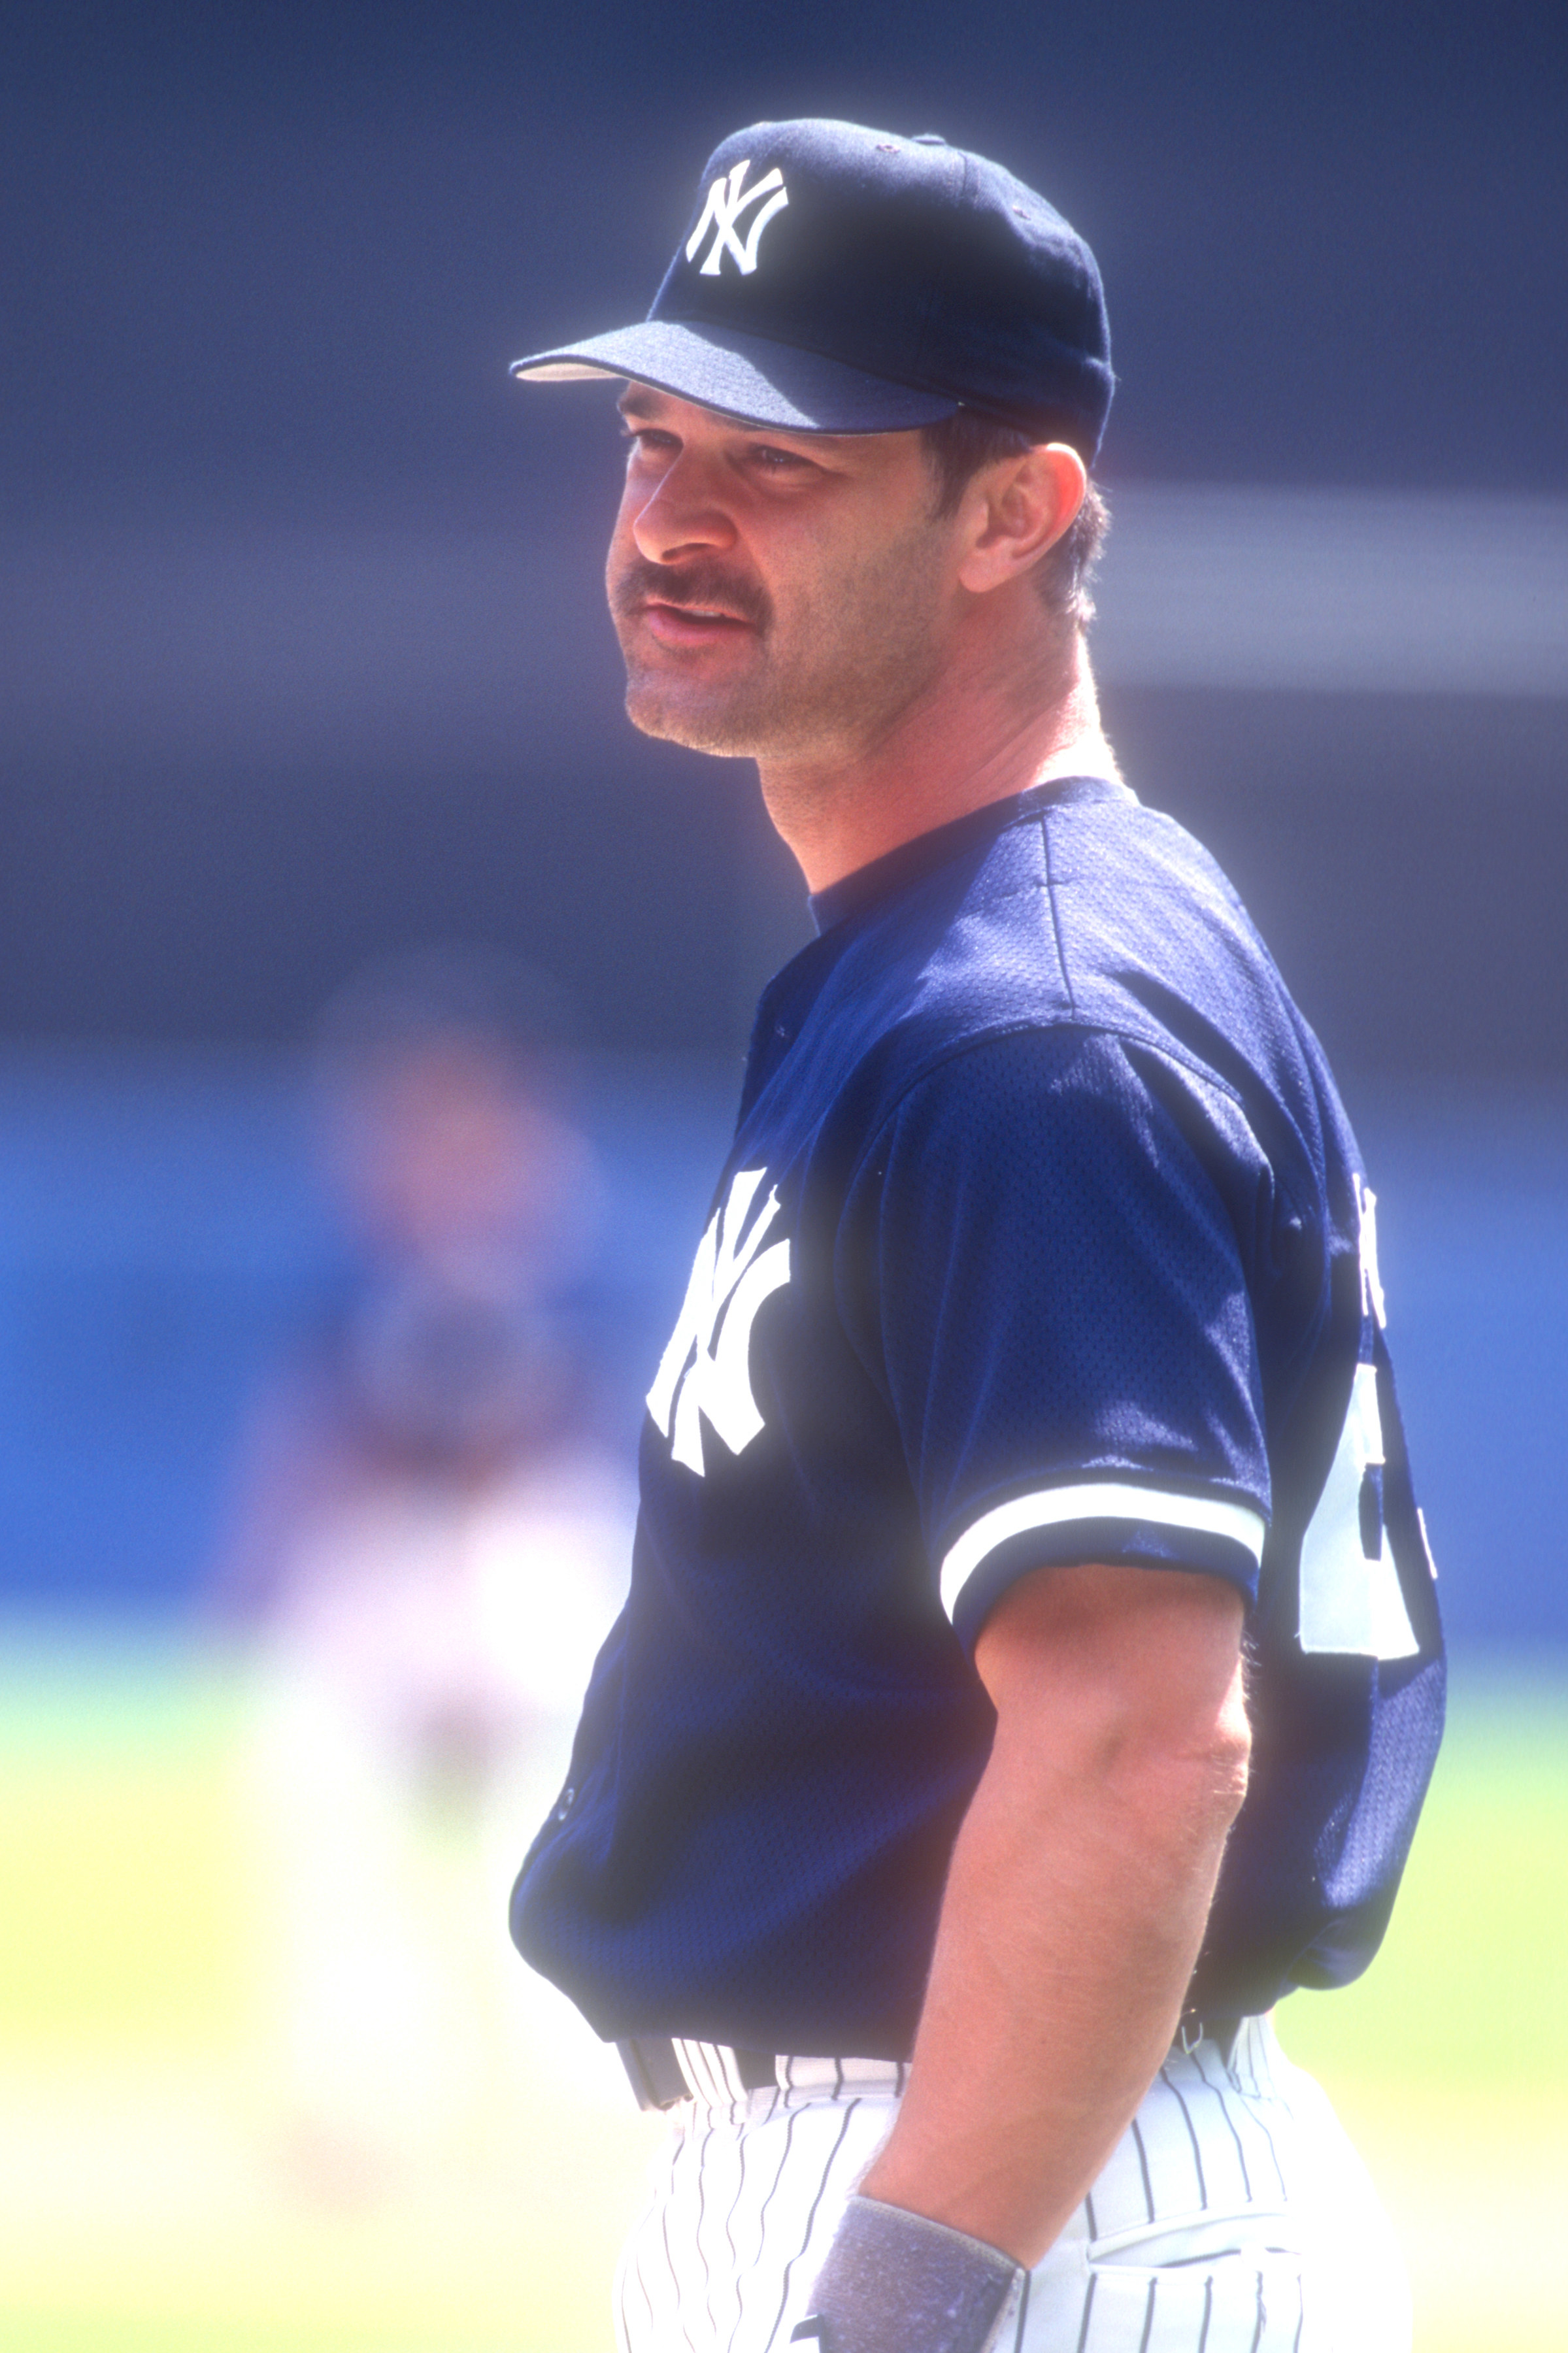 Don Mattingly with a mustache and wearing a Yankees uniform